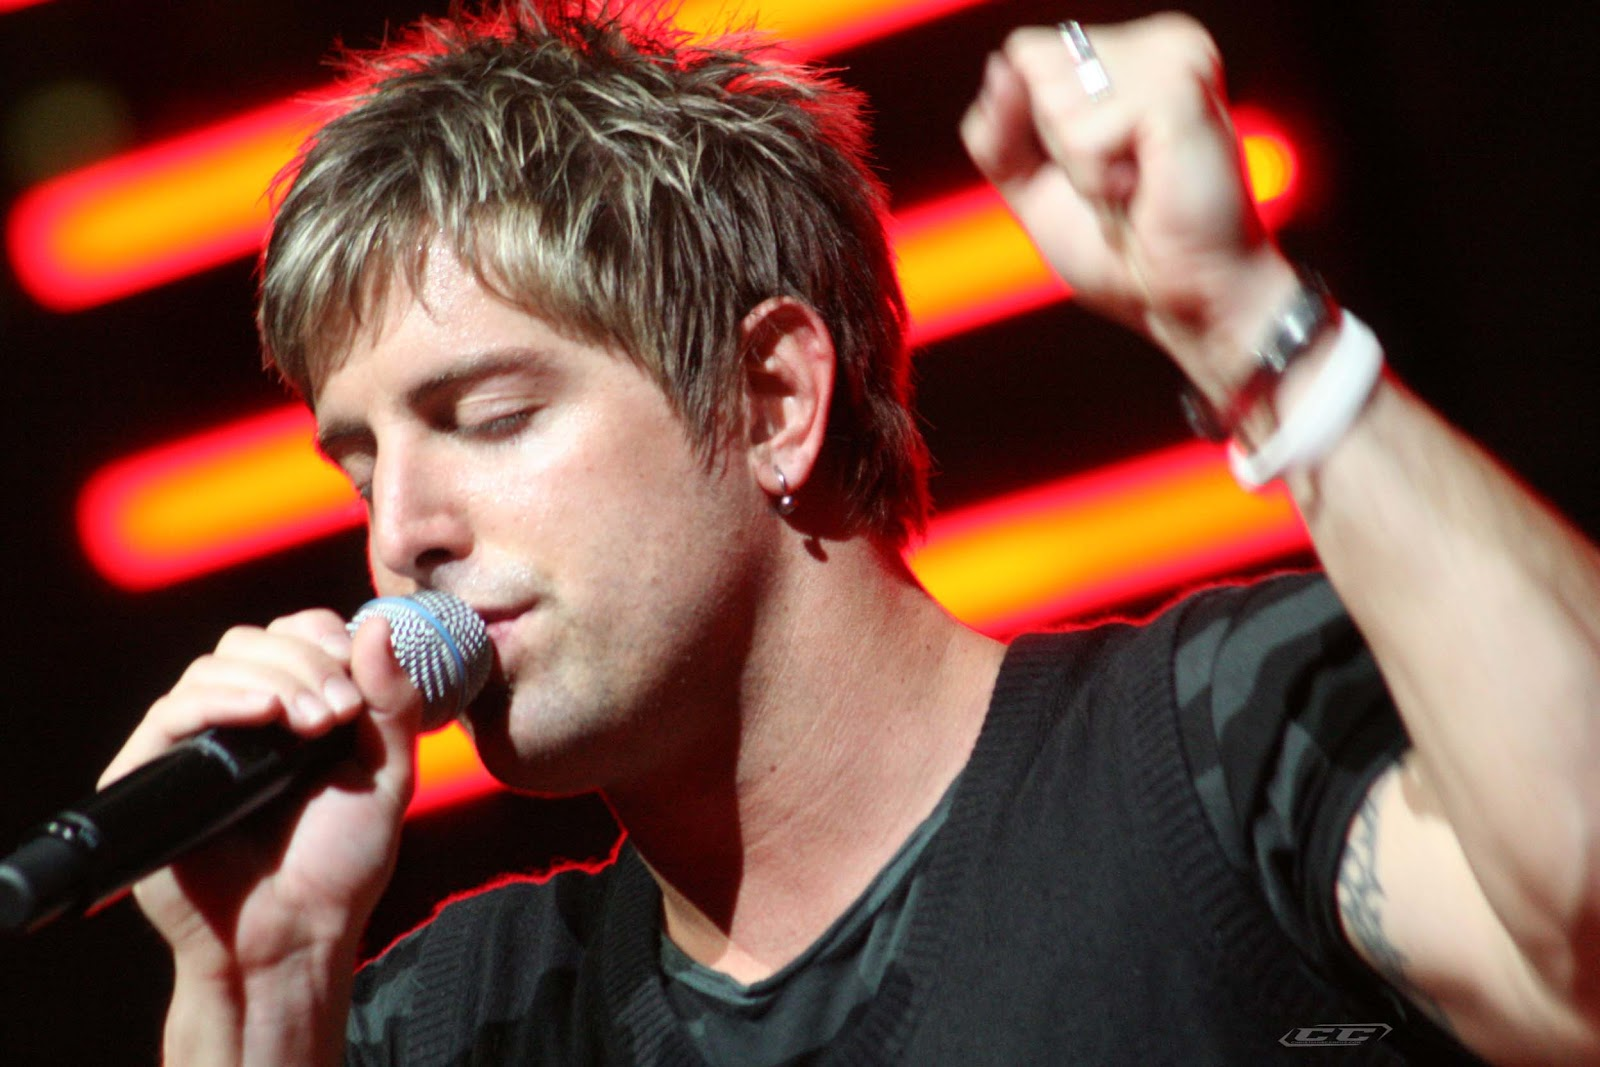 Jeremy Camp - Christmas, God With Us 2012 performing live in stage